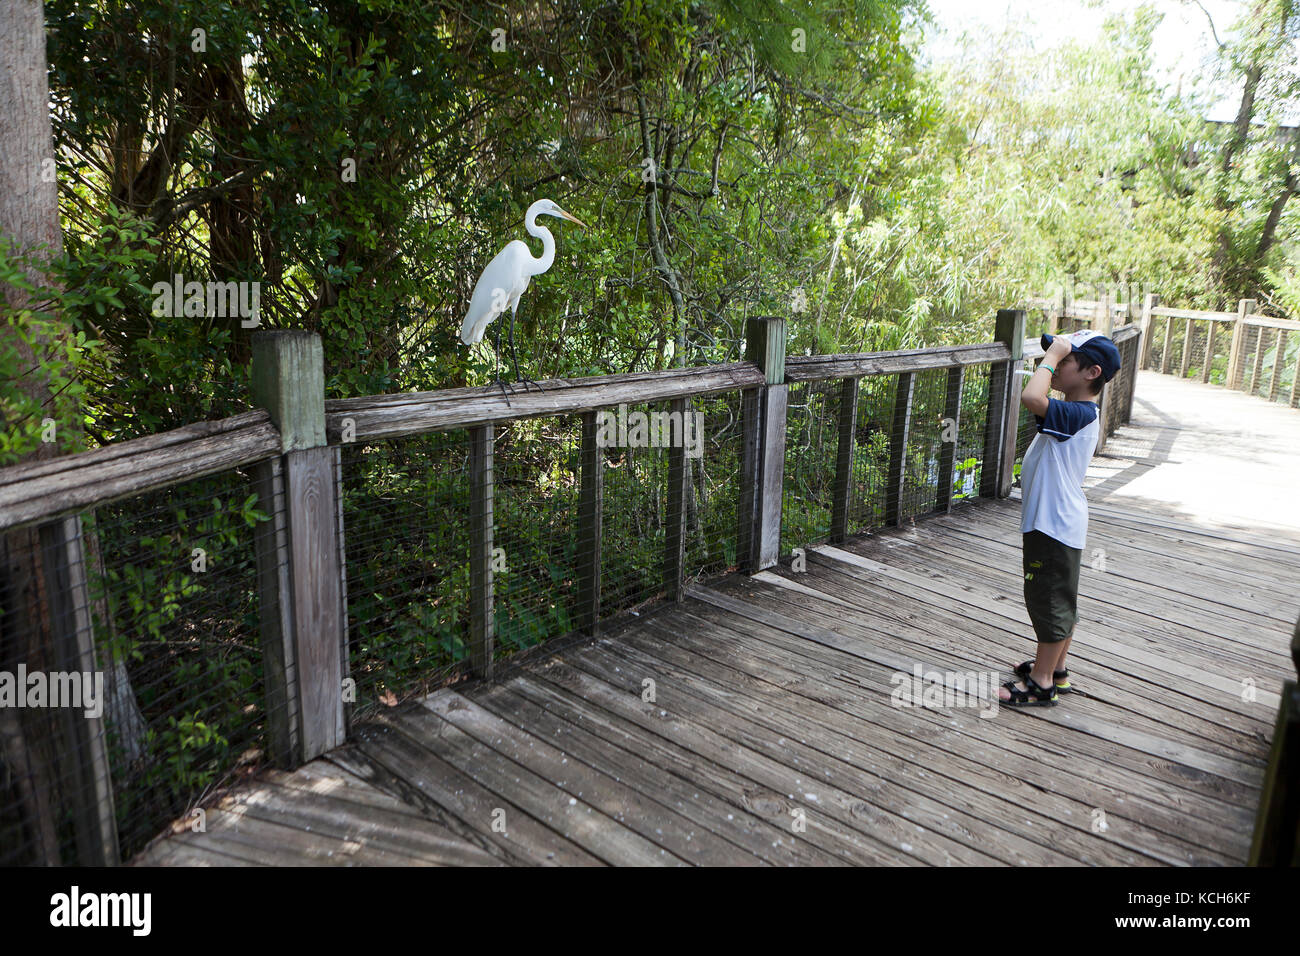 Child, 8 years old, observing a wild Great Egret bird (Ardea alba) - Florida USA - Stock Image